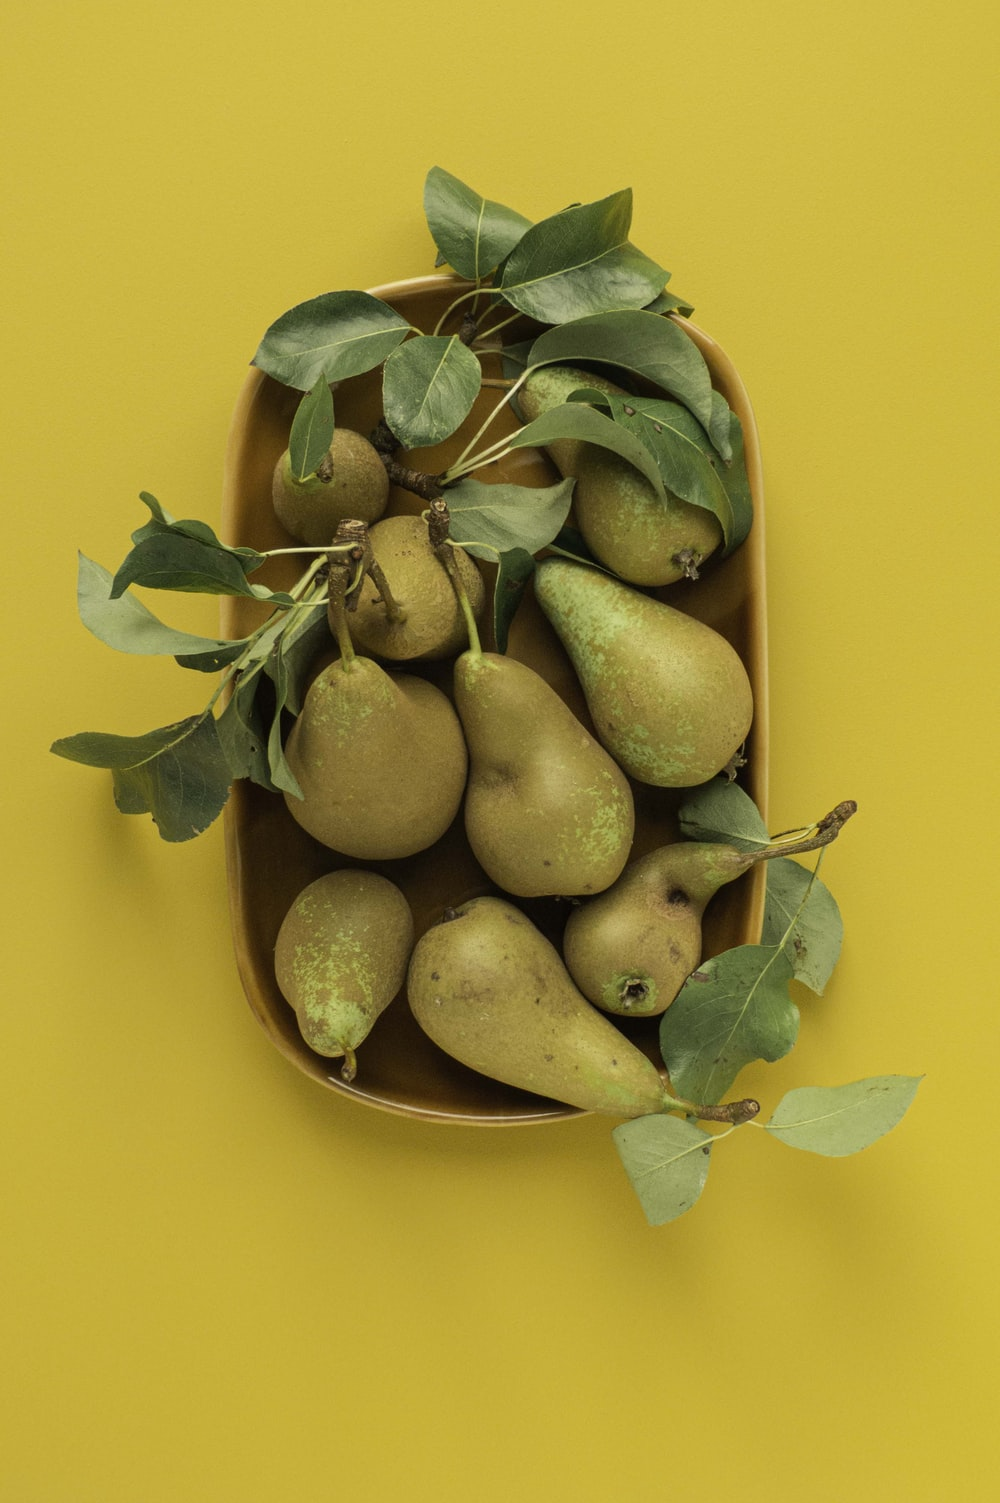 green and yellow fruits on yellow round plate